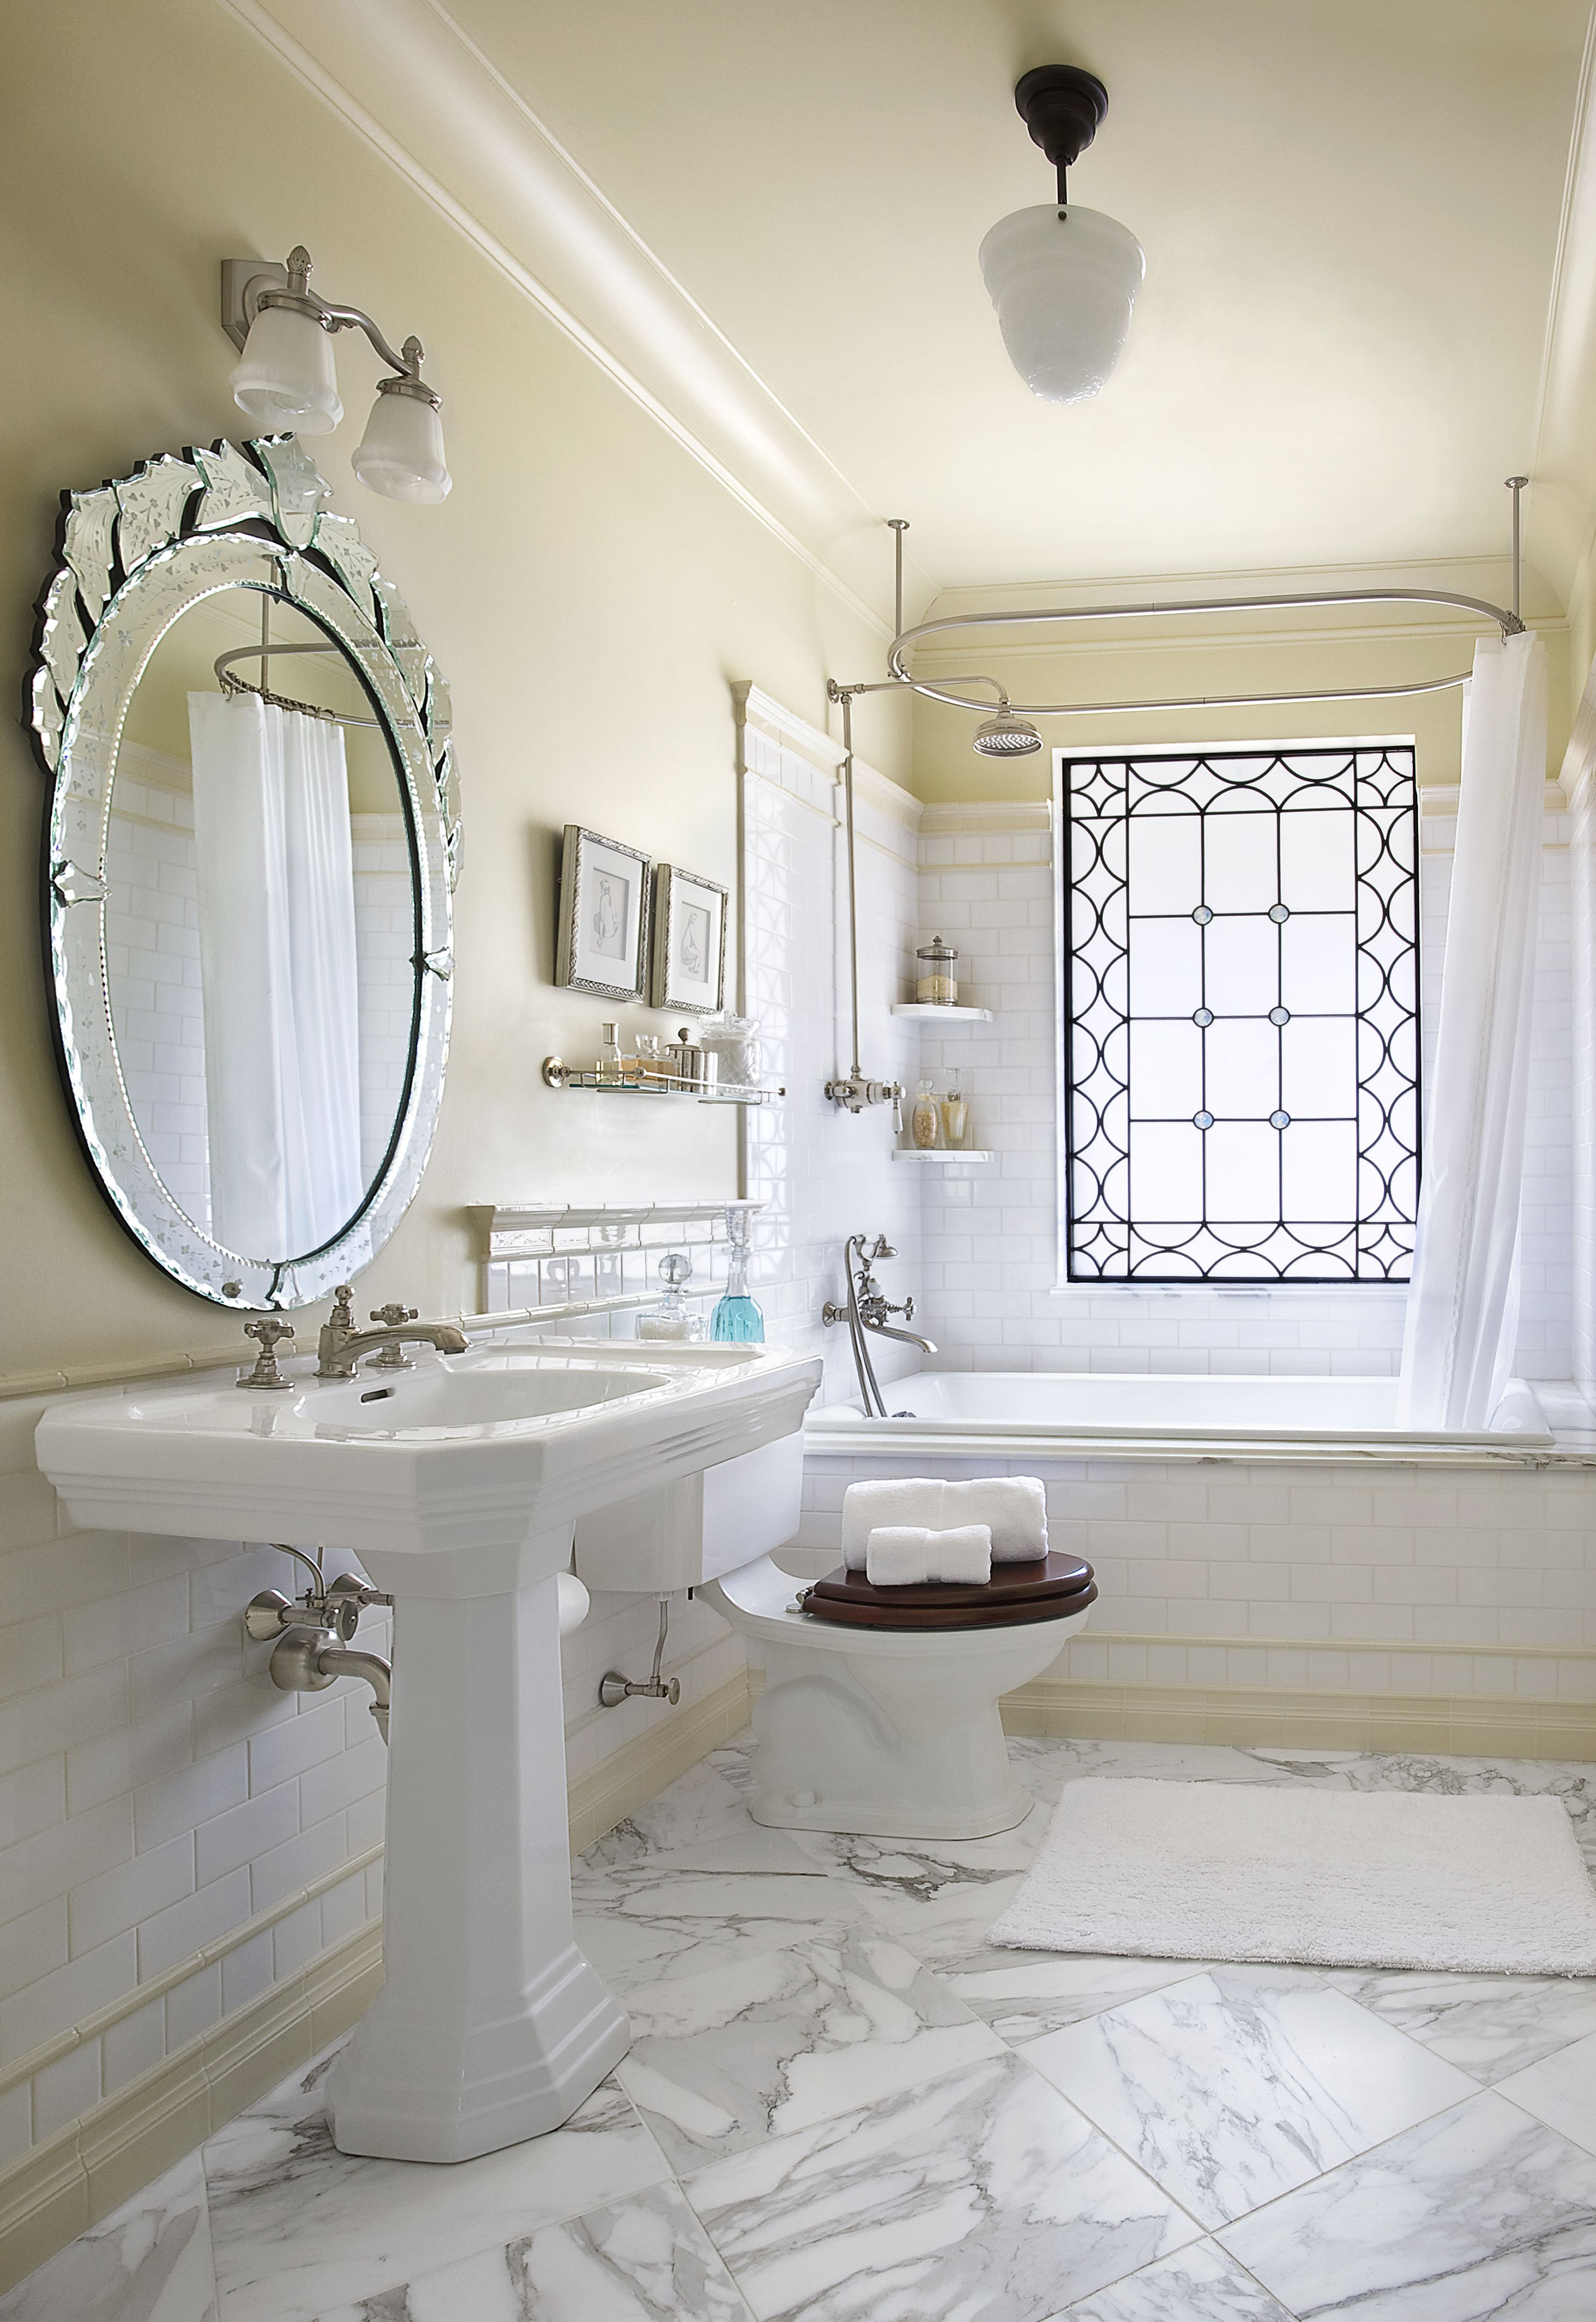 Master bathroom - Cream walls, trim and ceiling are featured ...